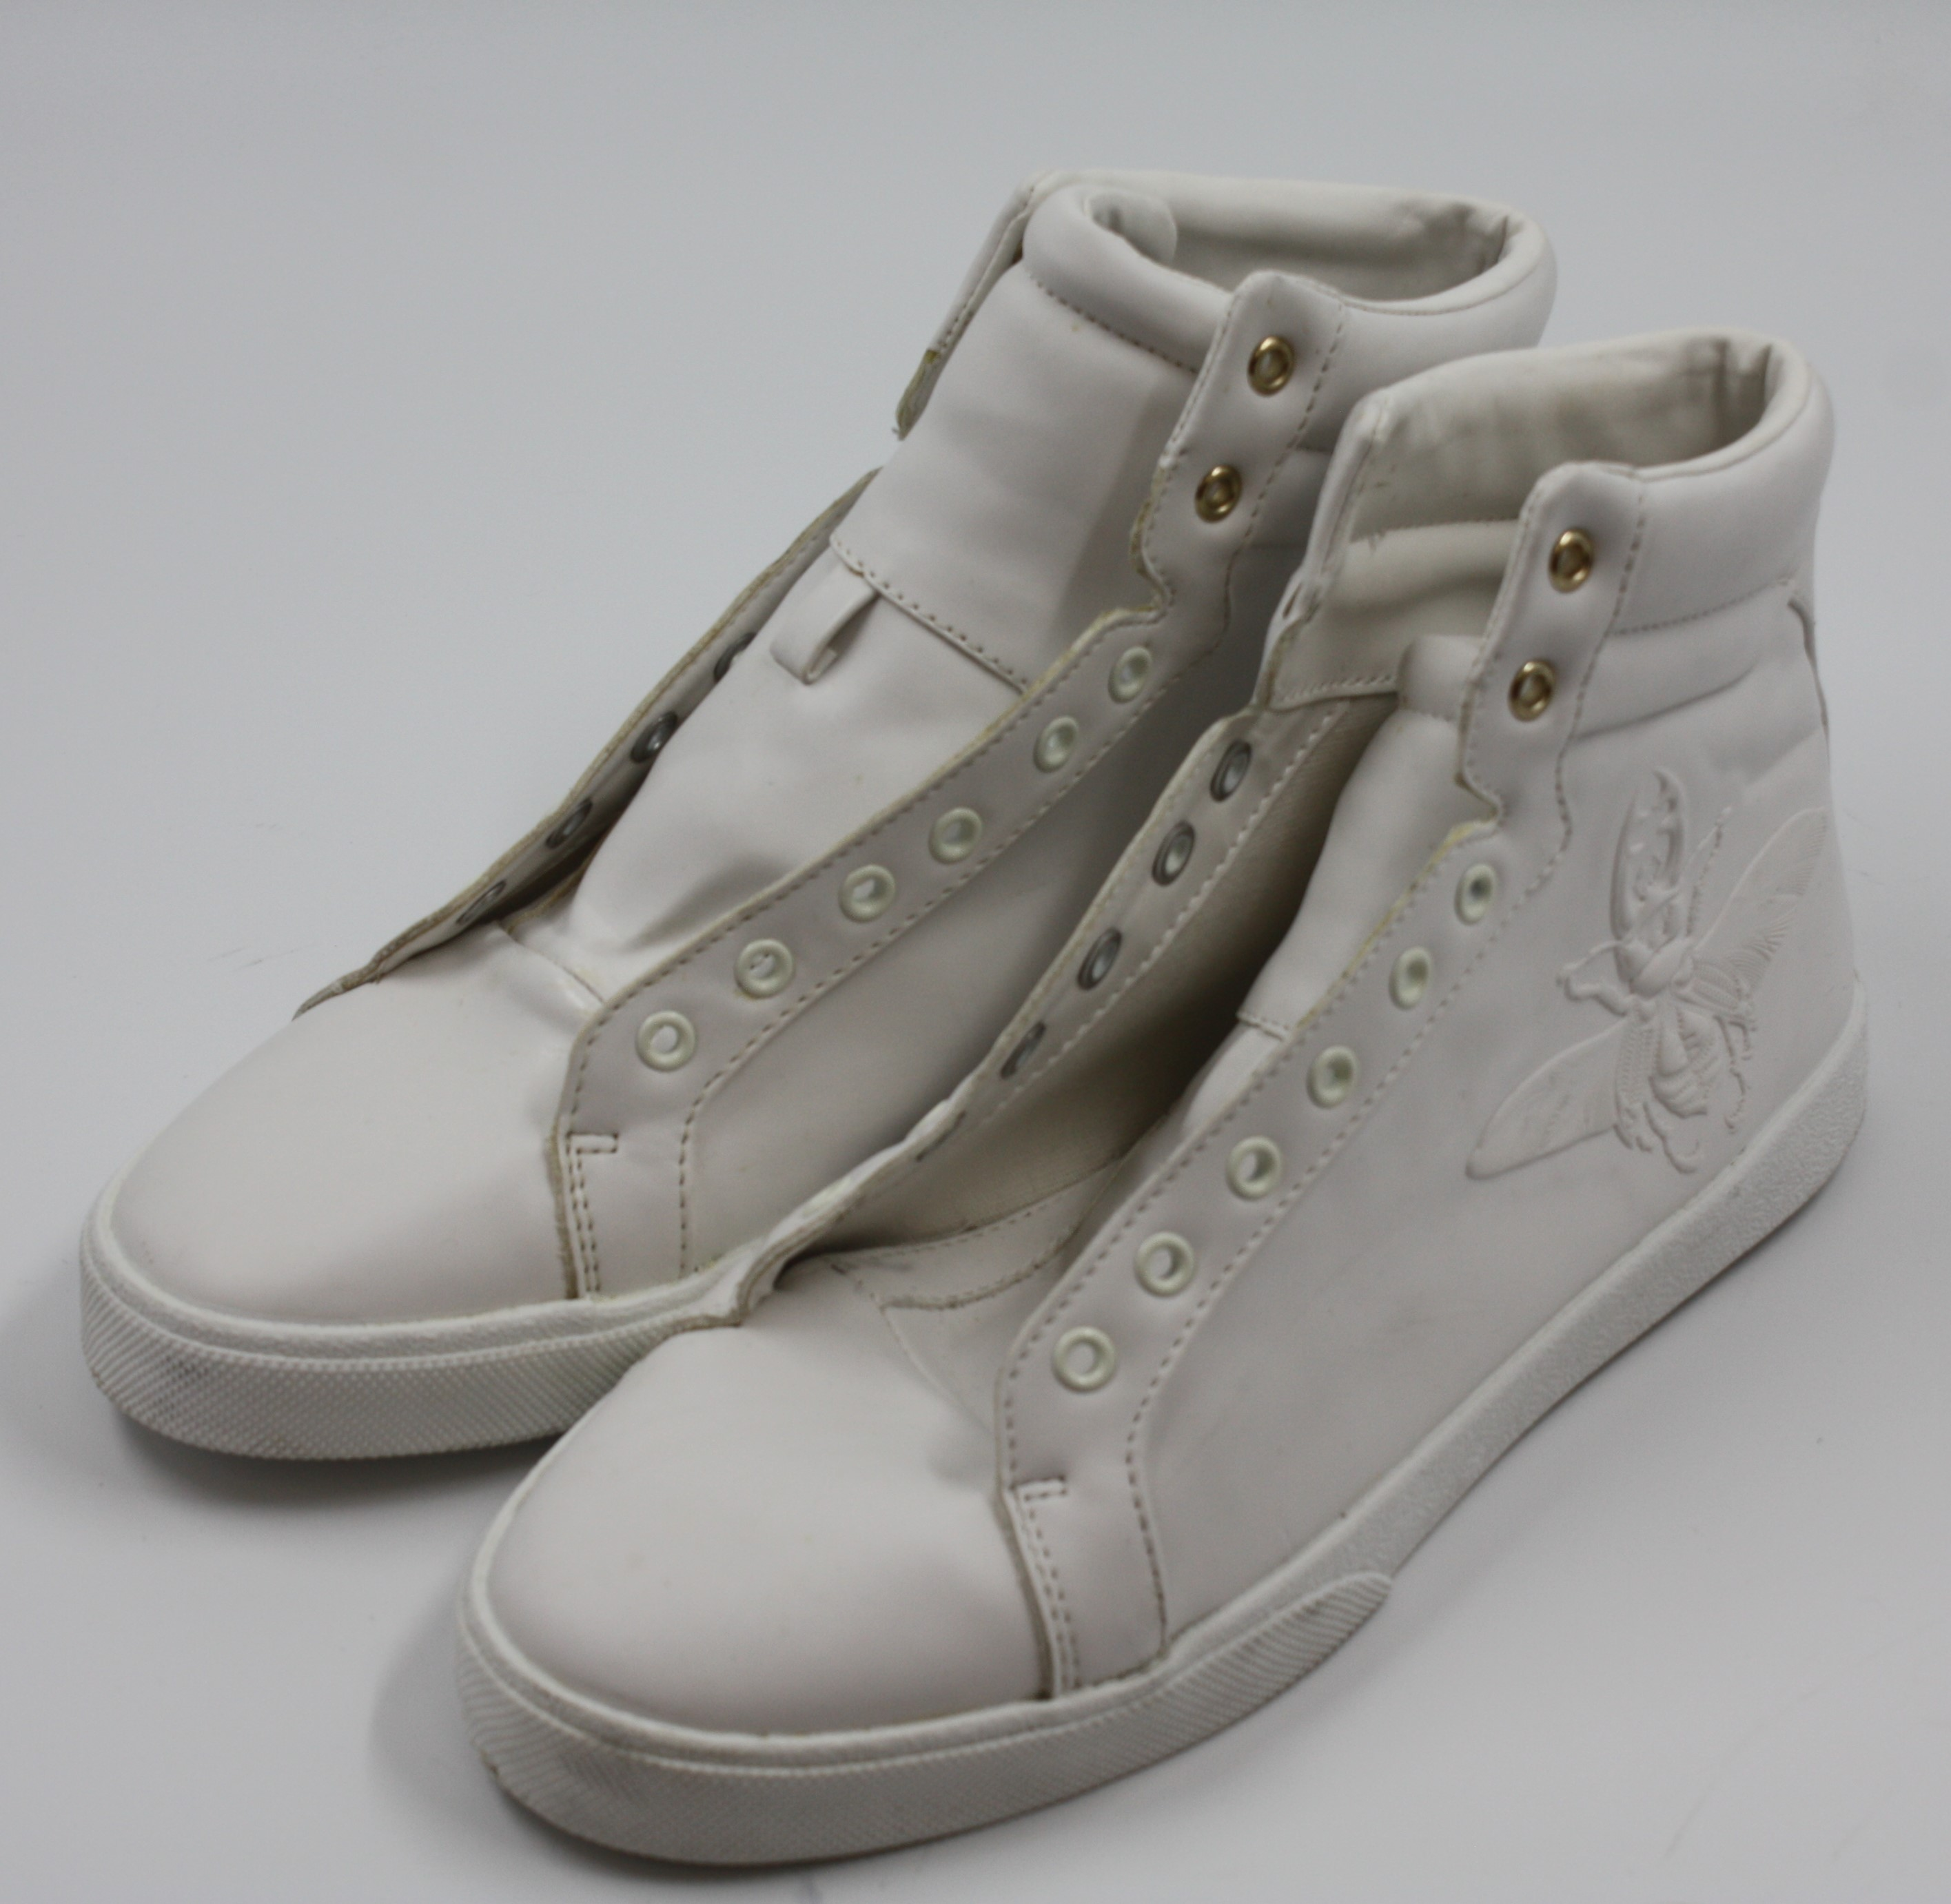 fd527c9f Details about Zara Mens White High Top Embossed Sneakers Shoes Size EU 40  U.S. 7